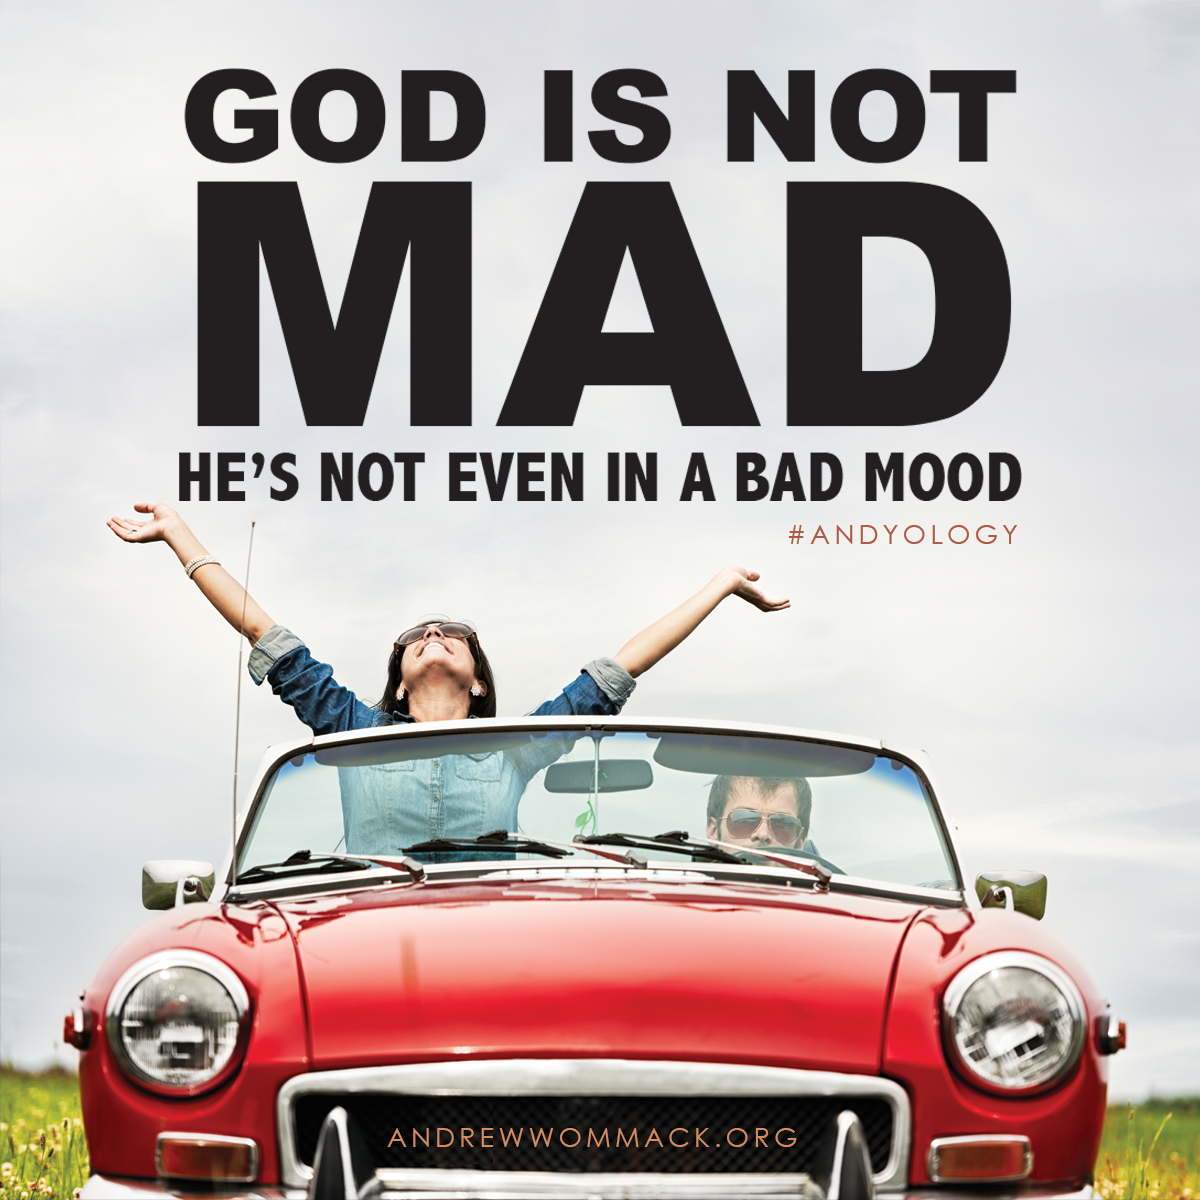 God is not mad! He's not even in a bad mood! #andyology awmi.net